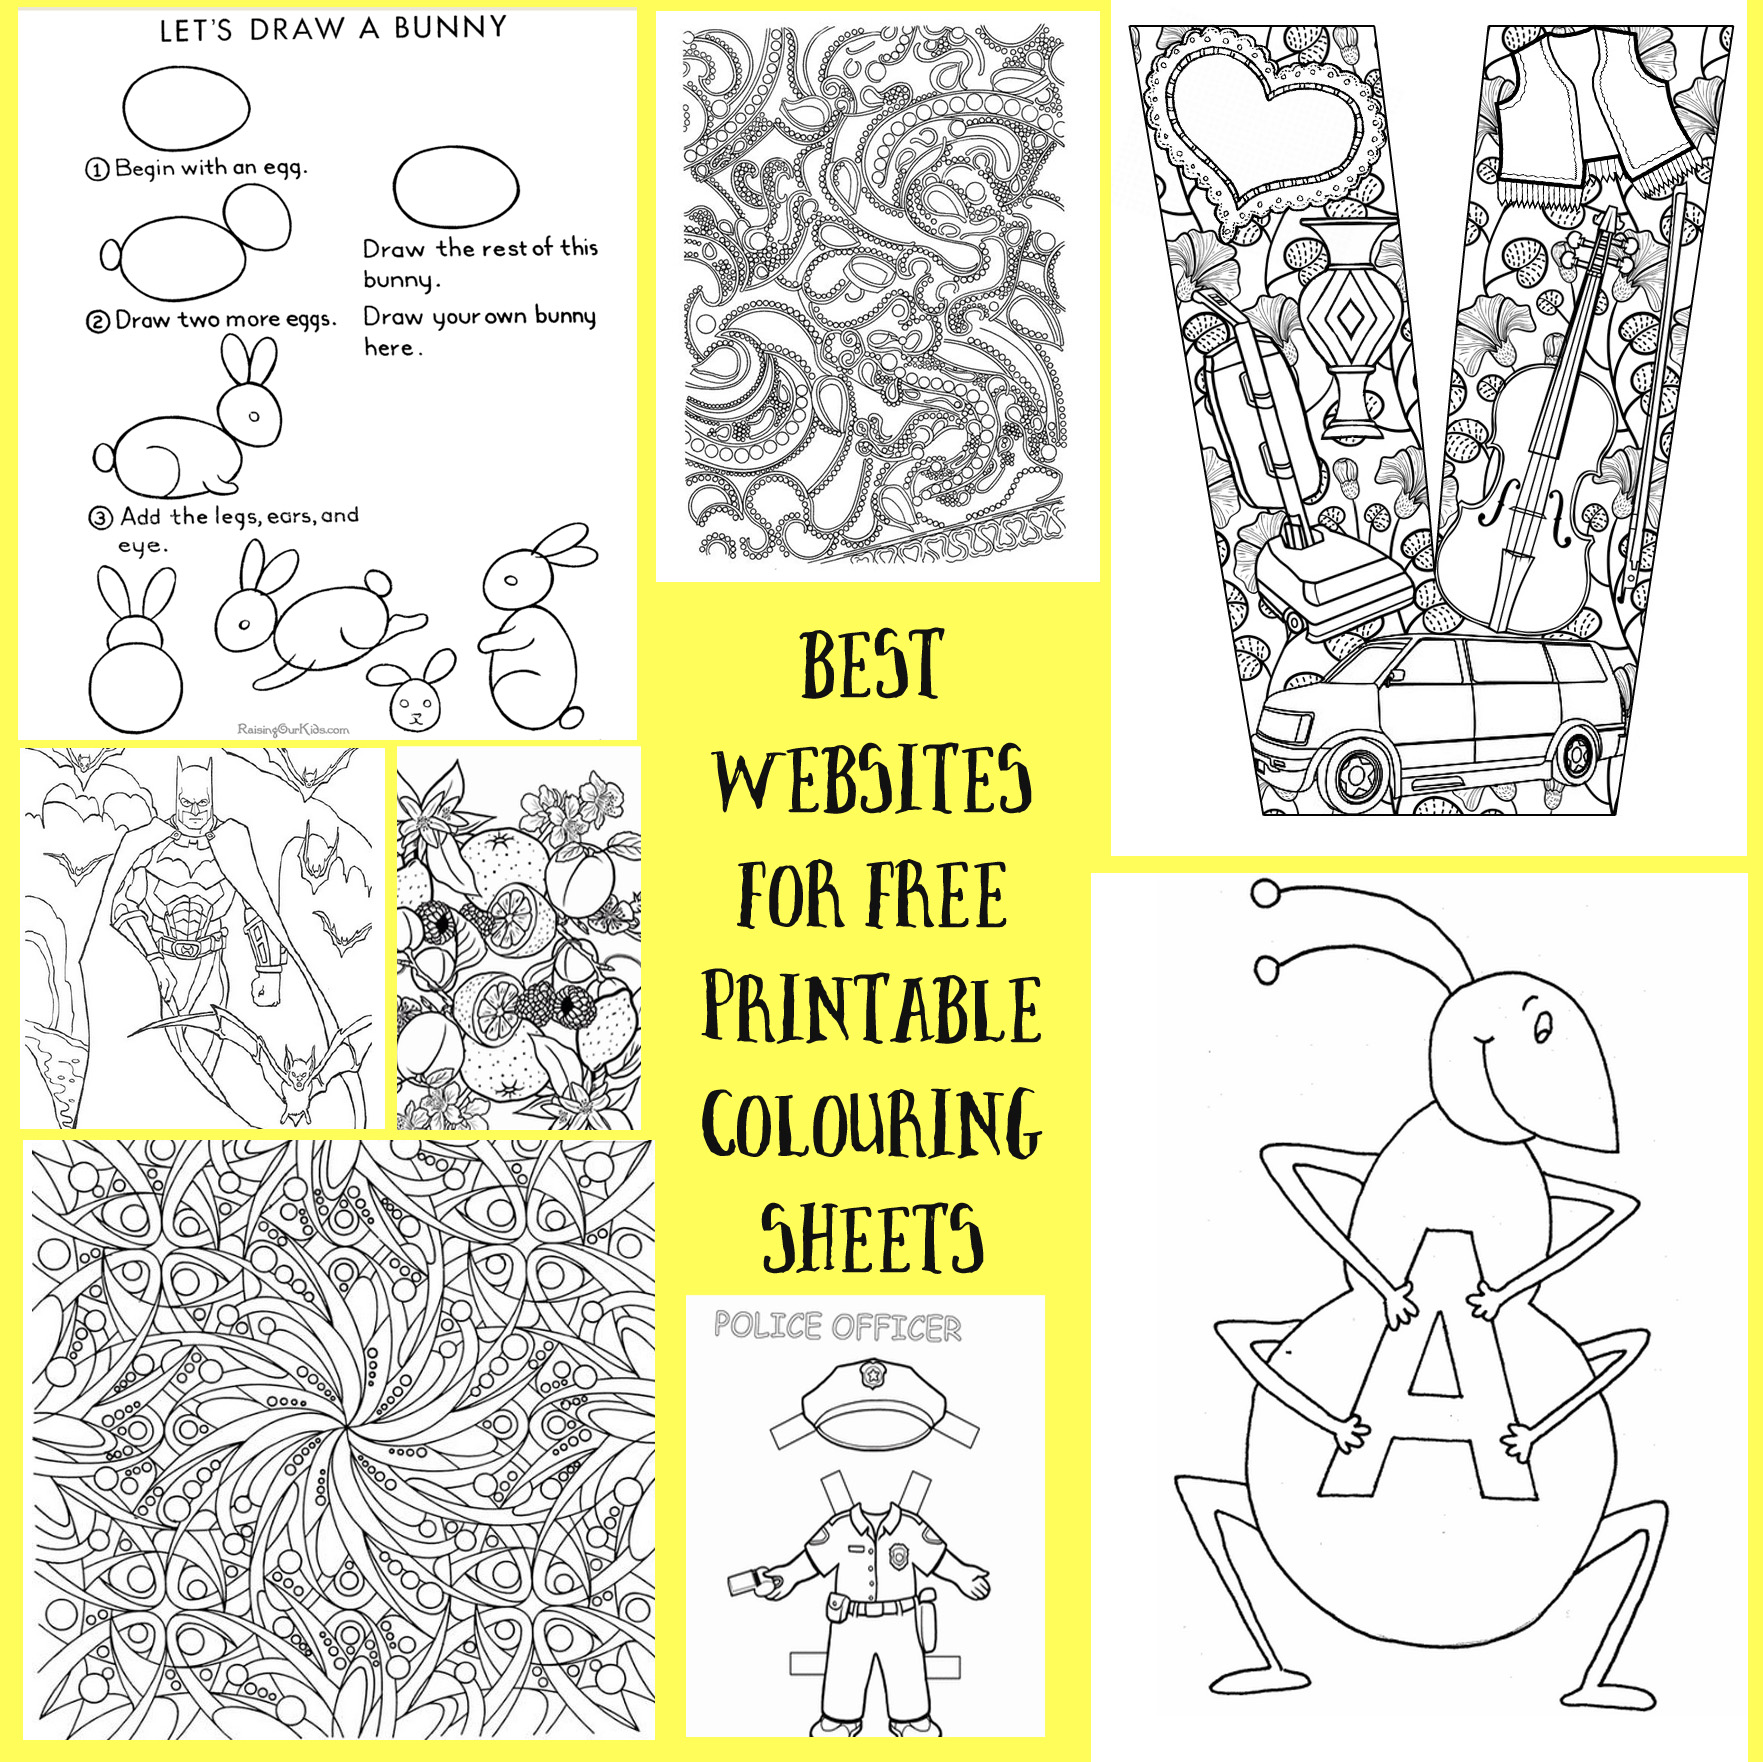 Resources Free Printable Colouring Sheets For Children